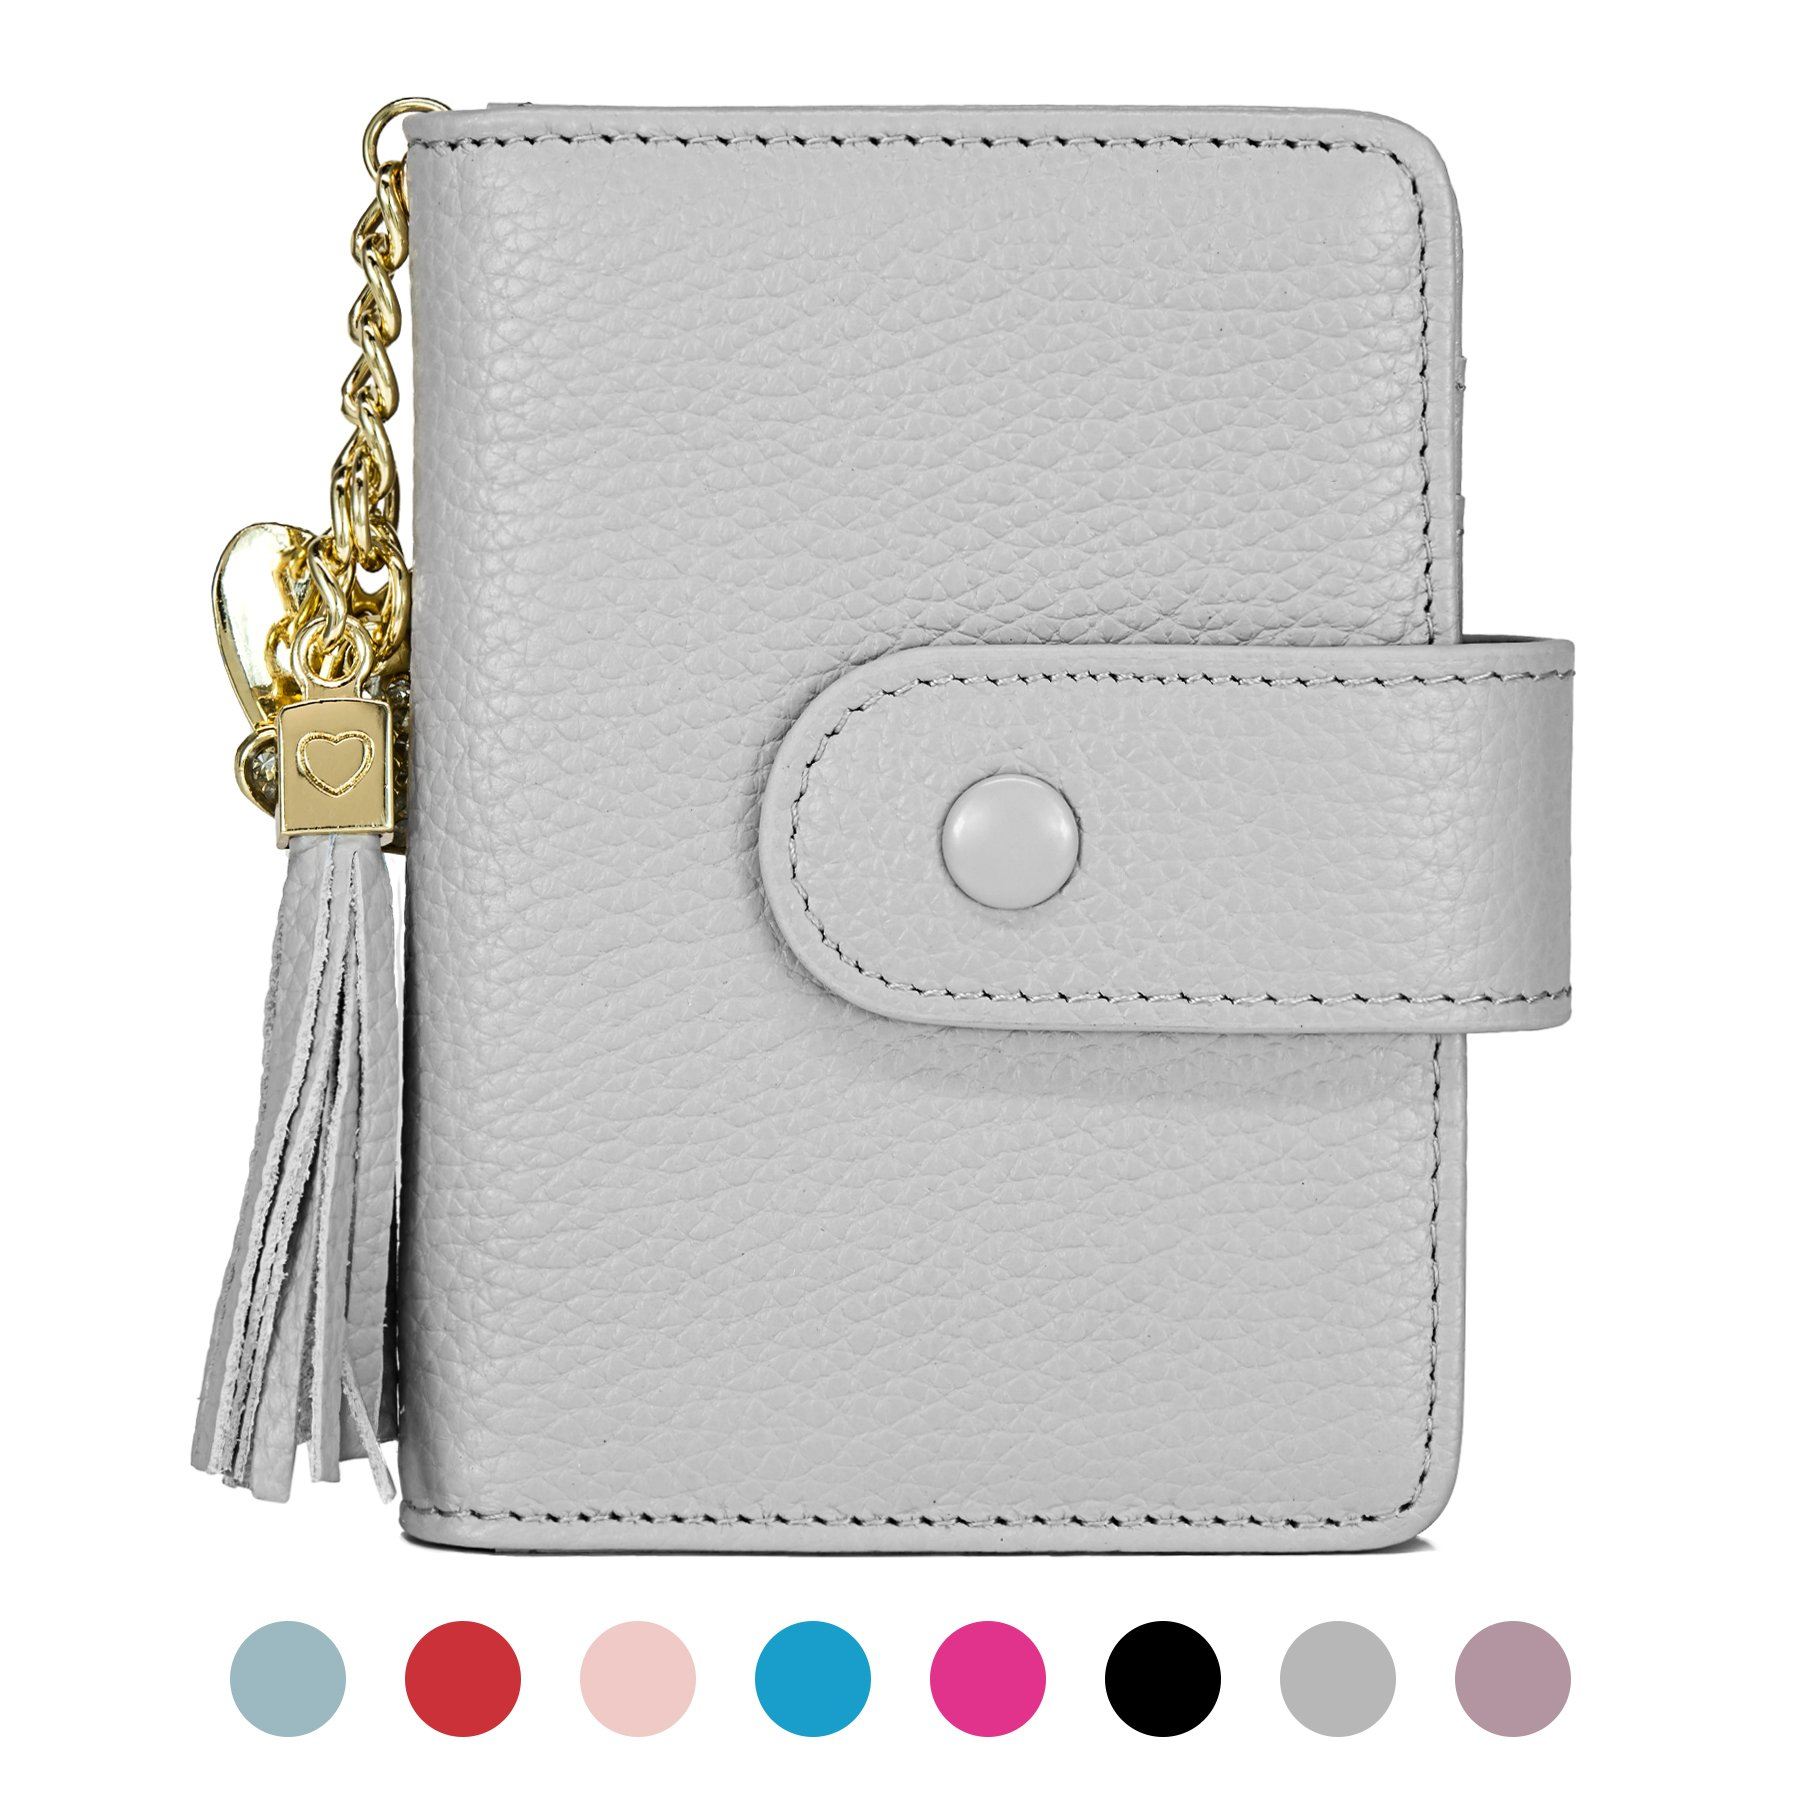 Women's Mini Credit Card Case Wallet with ID Window and Card Holder purse 9 Colors(Grey)